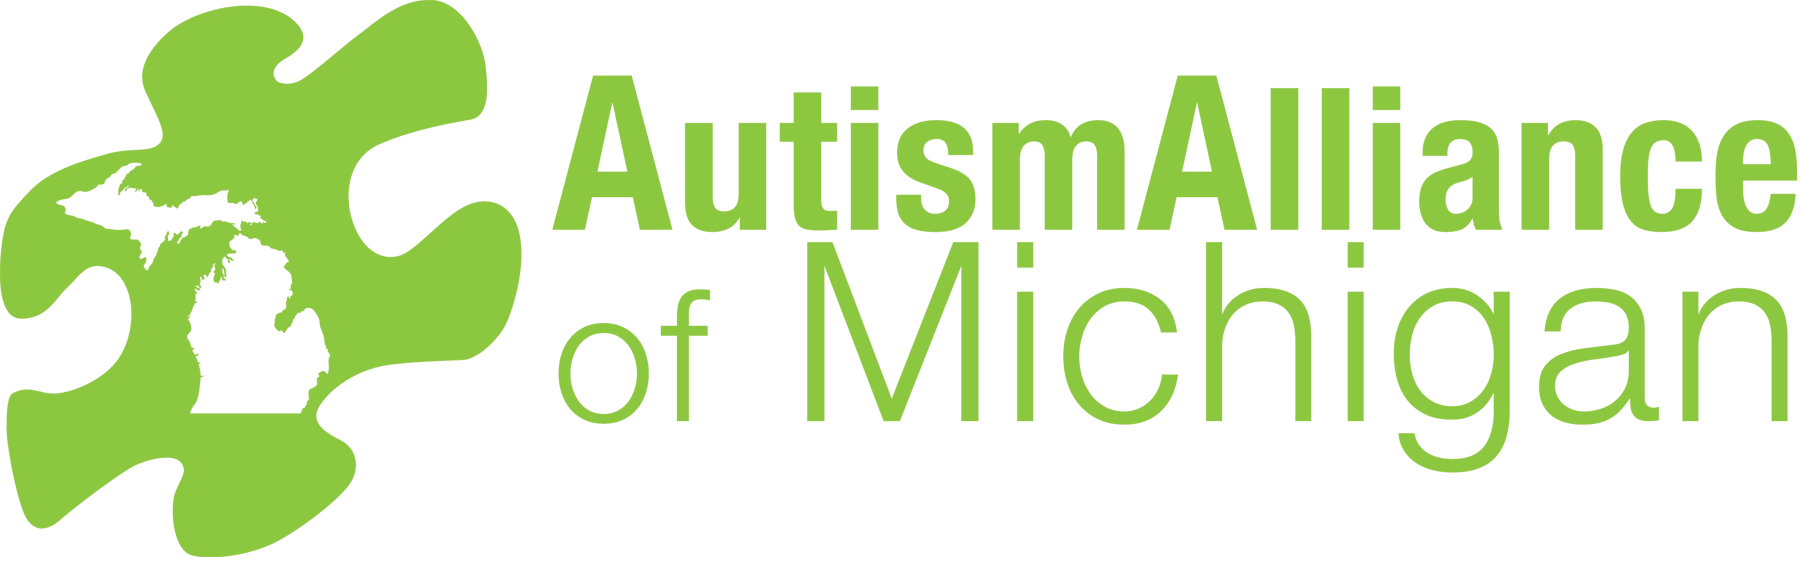 Michigan Autism Alliance